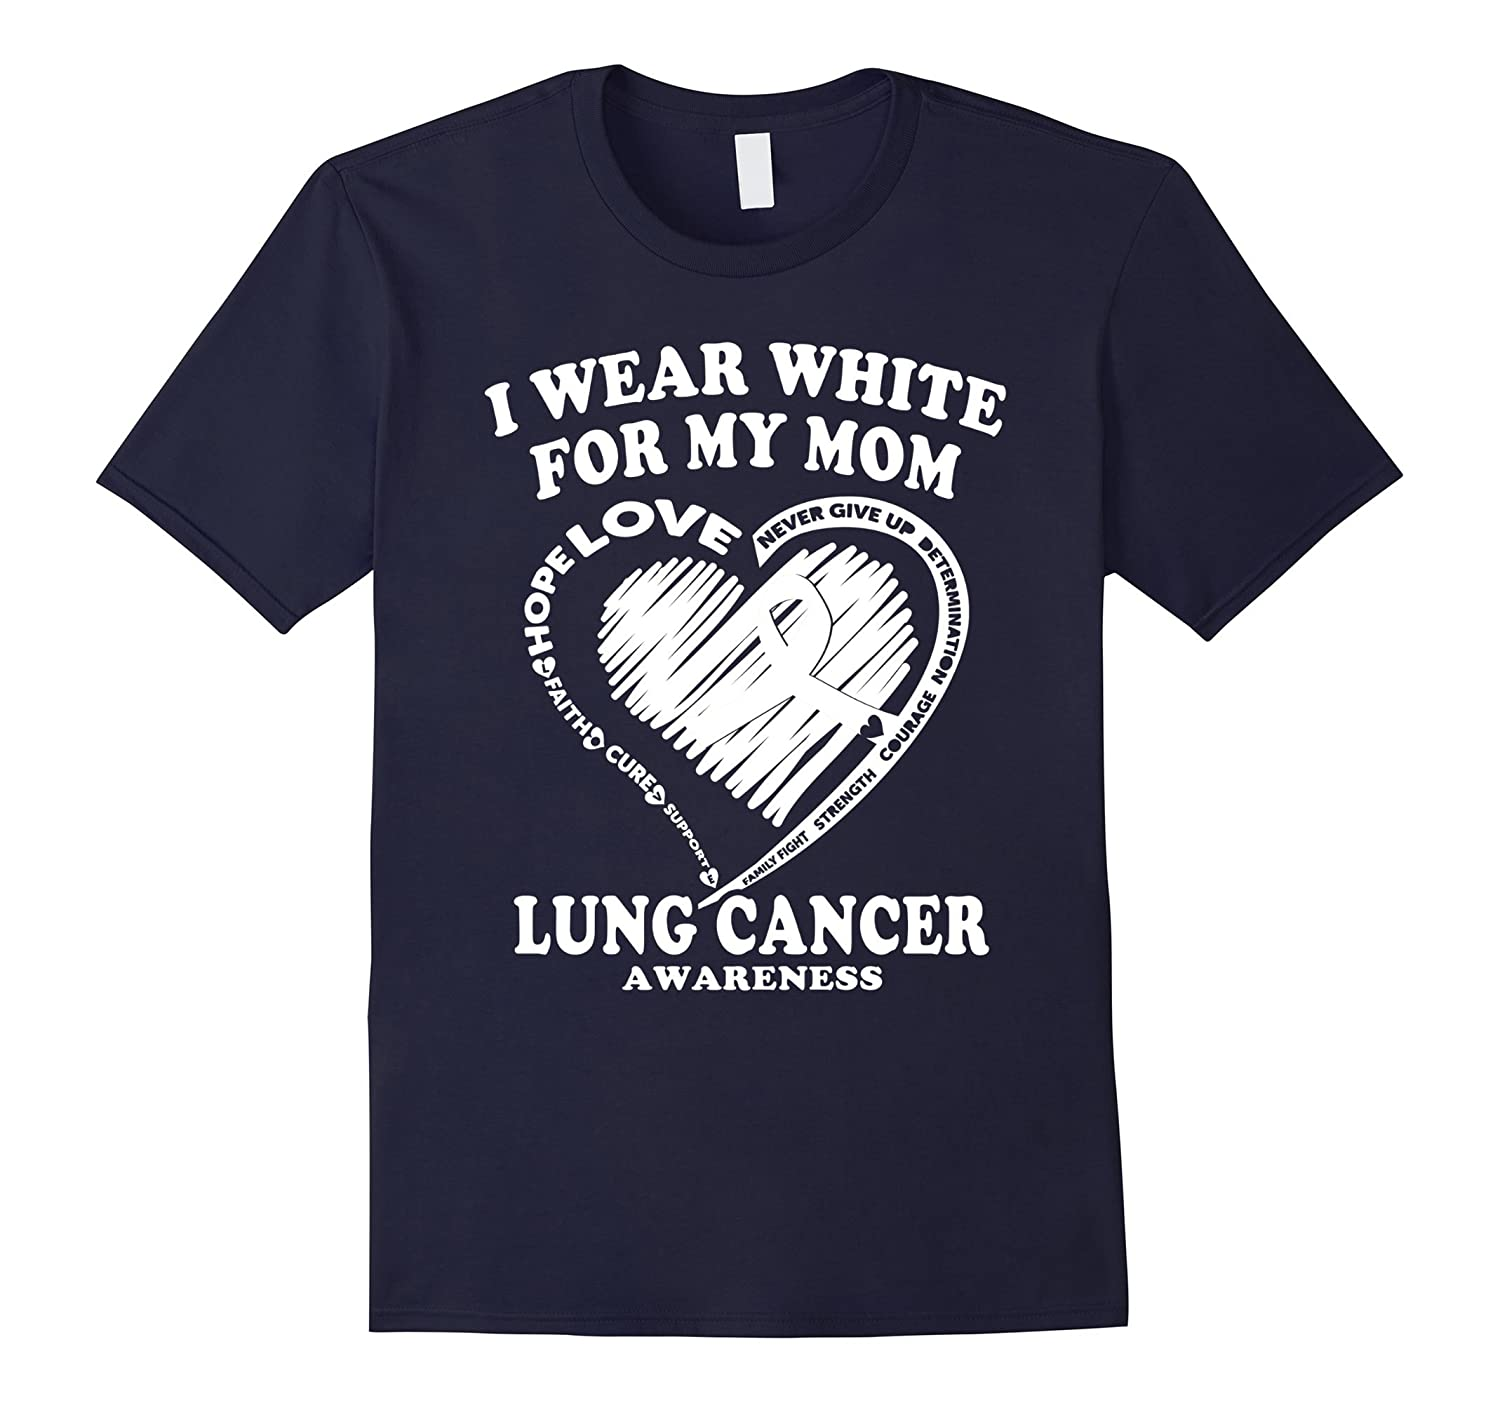 Lung Cancer Awareness T Shirt - I Wear White For My Mom-CL